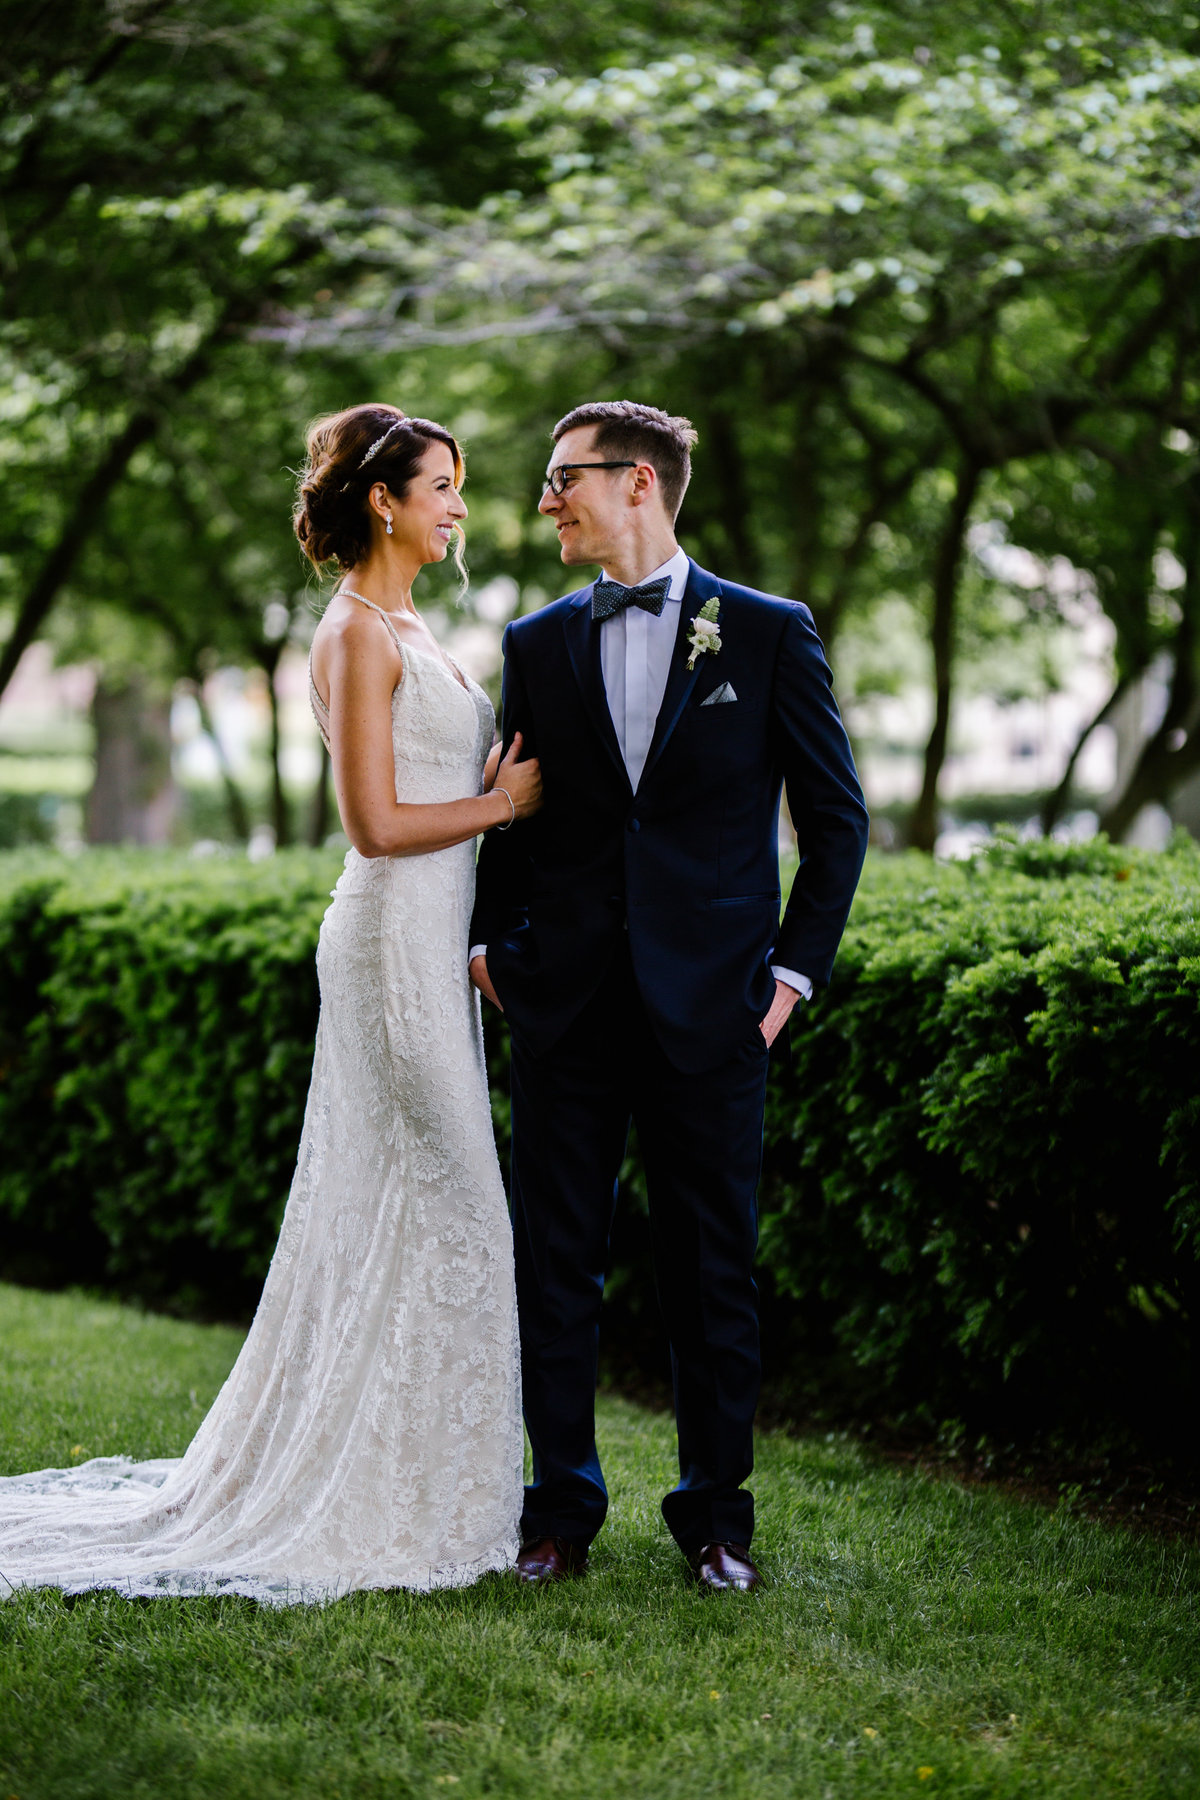 Unique pgh wedding photography68